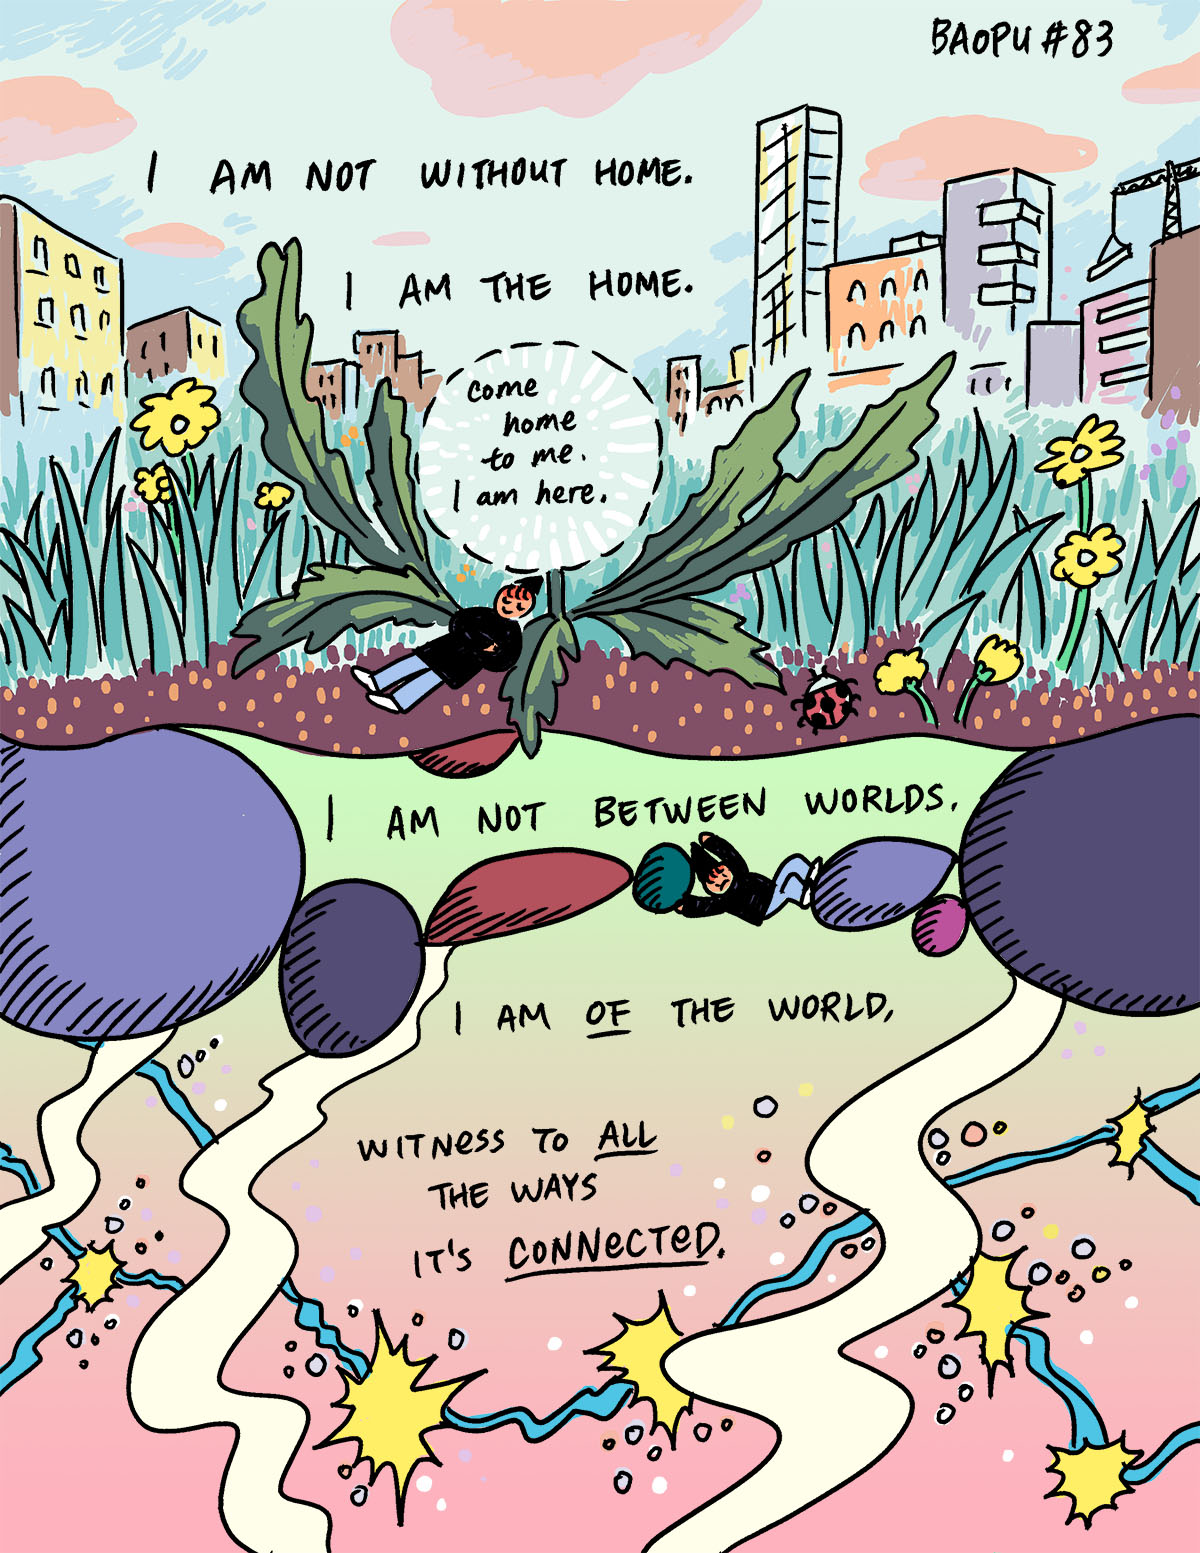 """Yao lays against an oversized plant that's as big as city buildings, above them is a word bubble that reads: """"Come home to me. I am here."""" Beyond the plants is the cityscape and beneath them roots grow deep. Surrounding these images is the following poem, centered in the illustration: """"I am not without home. I am the home. I am not between worlds. I am OF the world, witness to ALL the ways it's CONNECTED."""""""